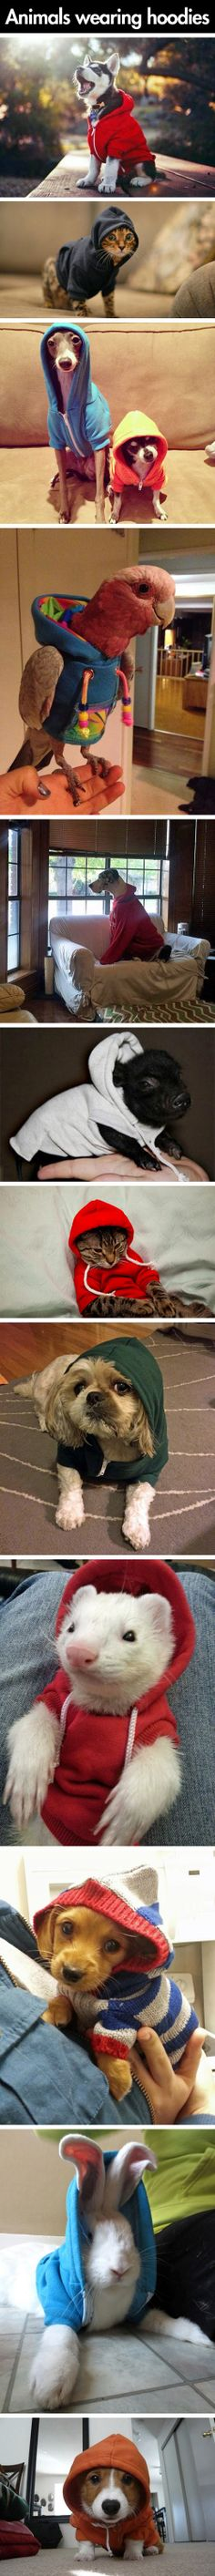 A collection of adorable animals in hoodies.